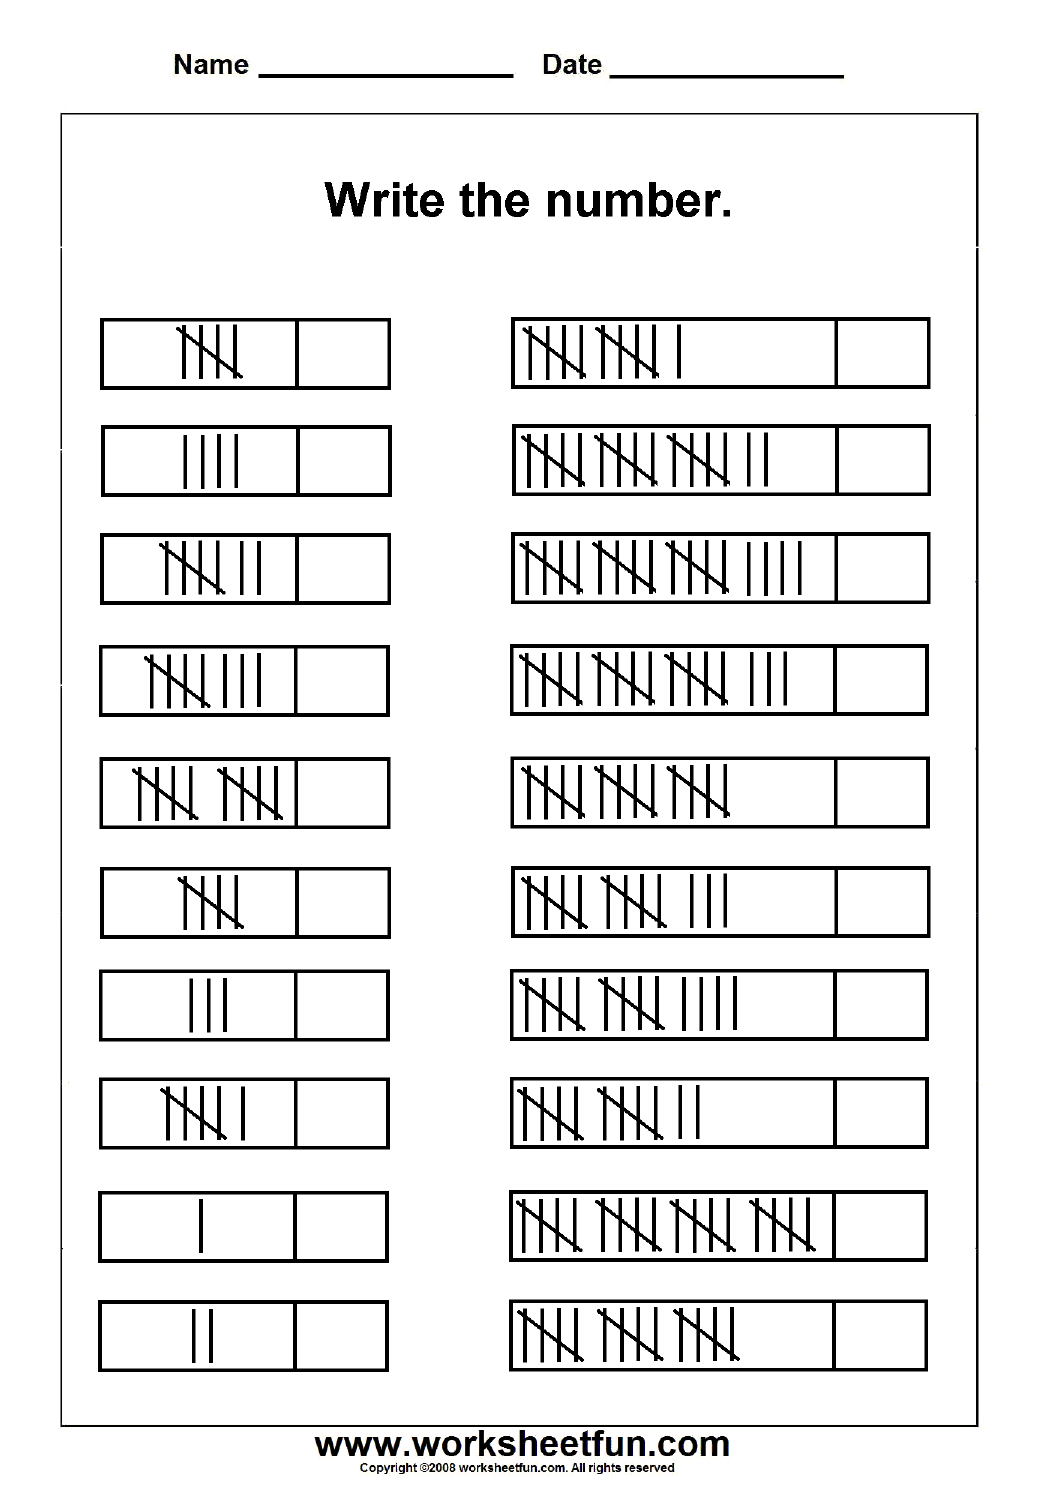 Worksheets Tally Worksheets tally marks 1 worksheet worksheets teaching pinterest worksheets